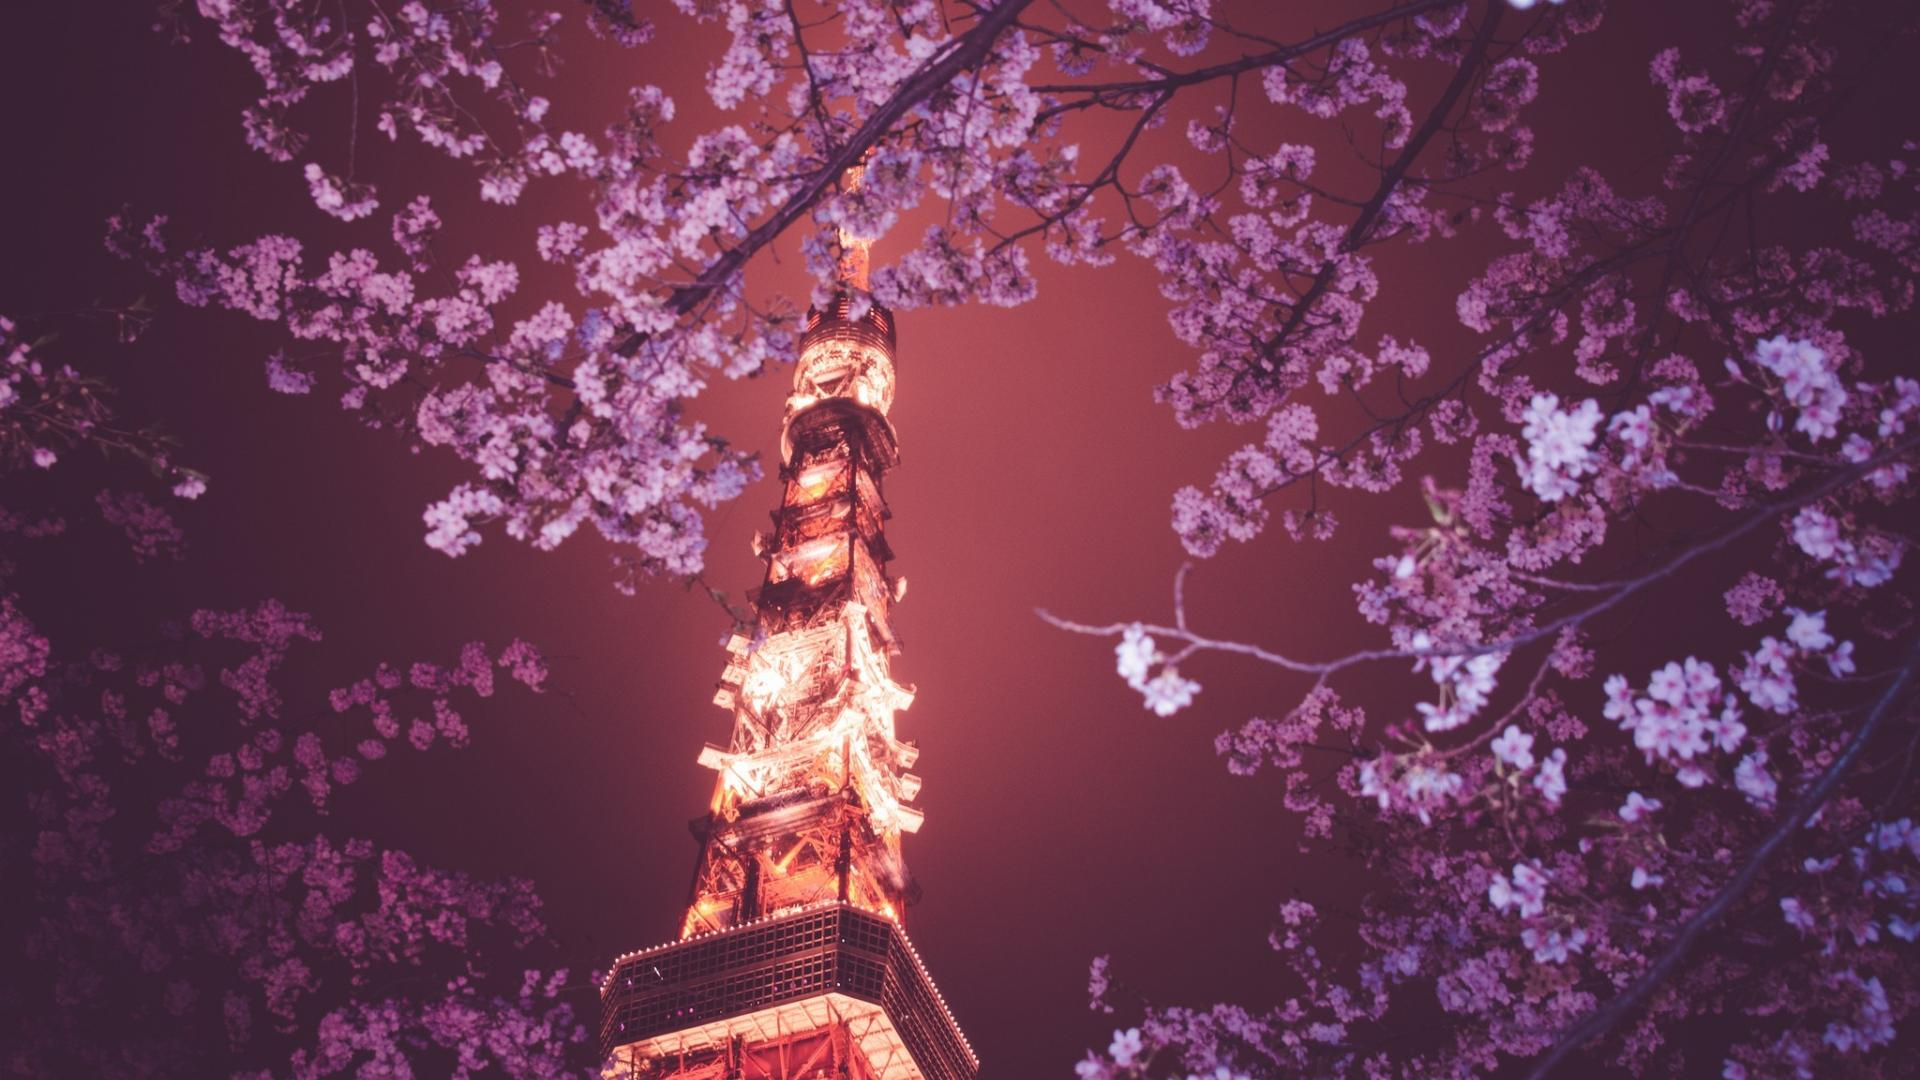 Japanese Cherry Blossom Laptop Wallpapers Top Free Japanese Cherry Blossom Laptop Backgrounds Wallpaperaccess